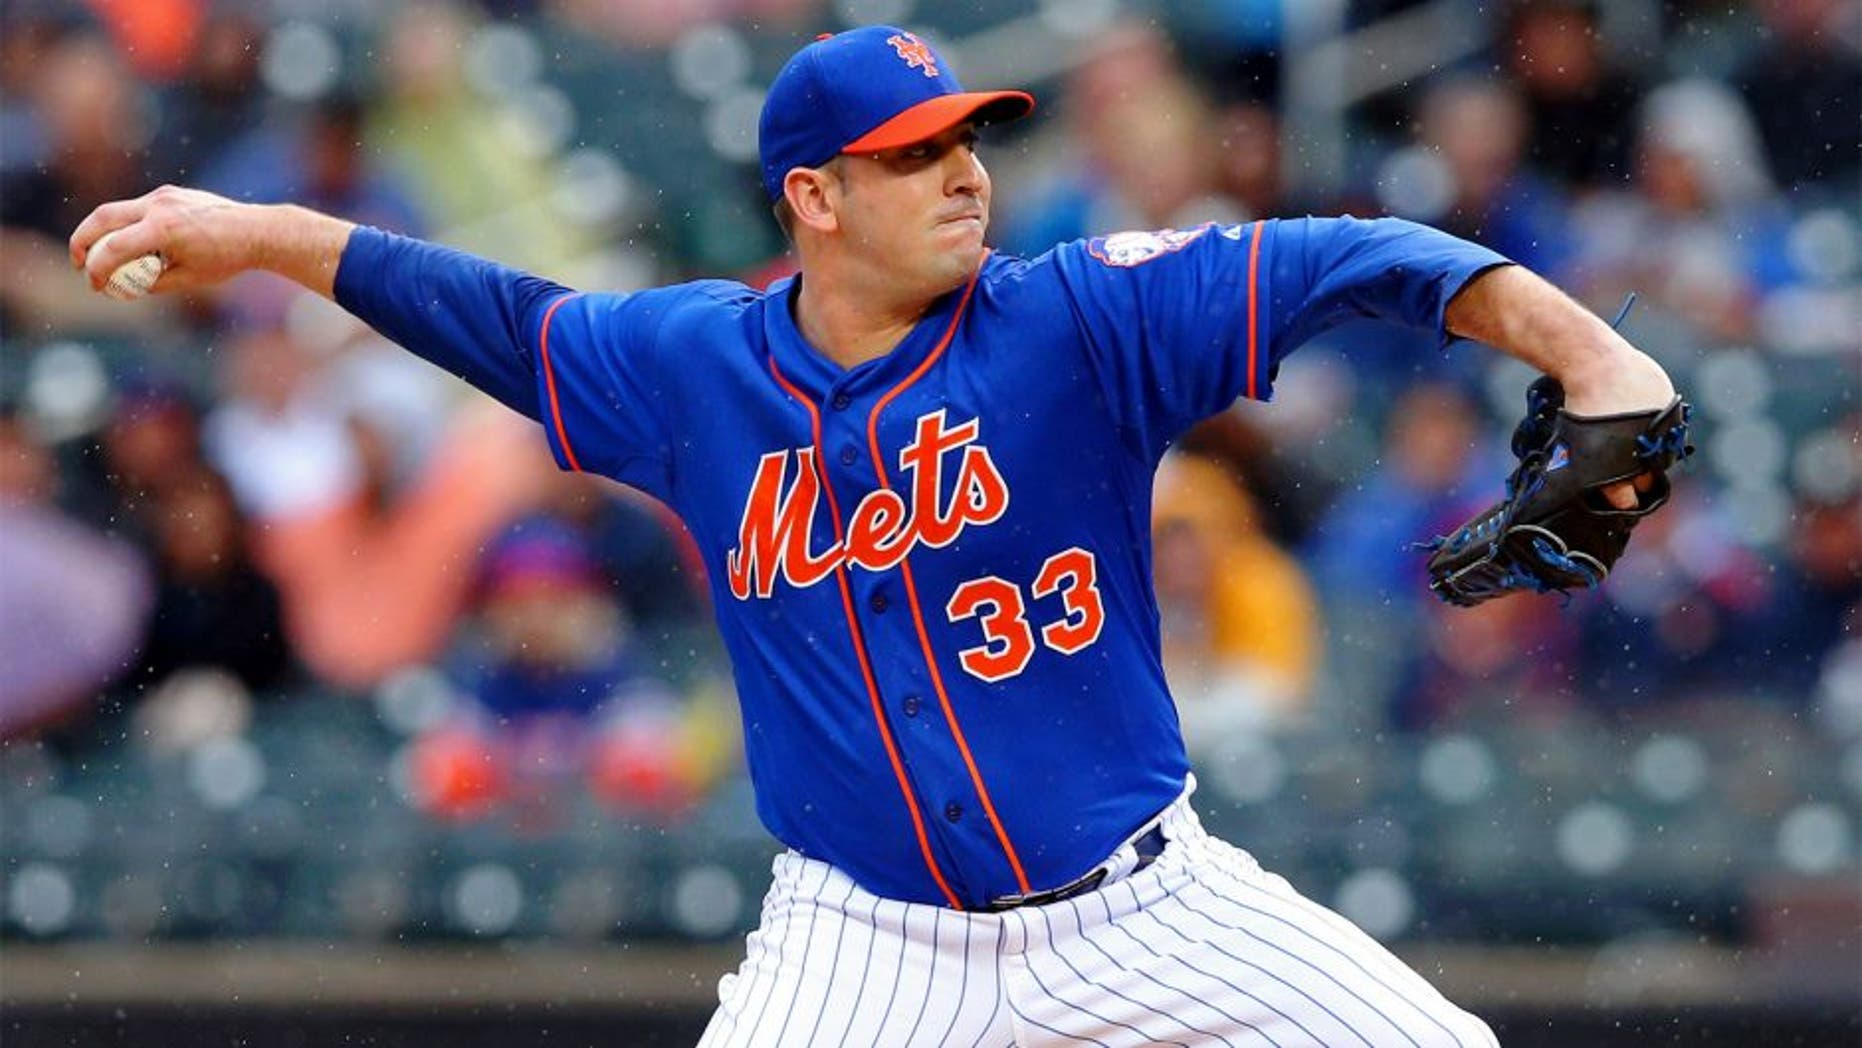 Jun 27, 2015; New York City, NY, USA; New York Mets starting pitcher Matt Harvey (33) pitches against the Cincinnati Reds during the second inning at Citi Field. Mandatory Credit: Brad Penner-USA TODAY Sports